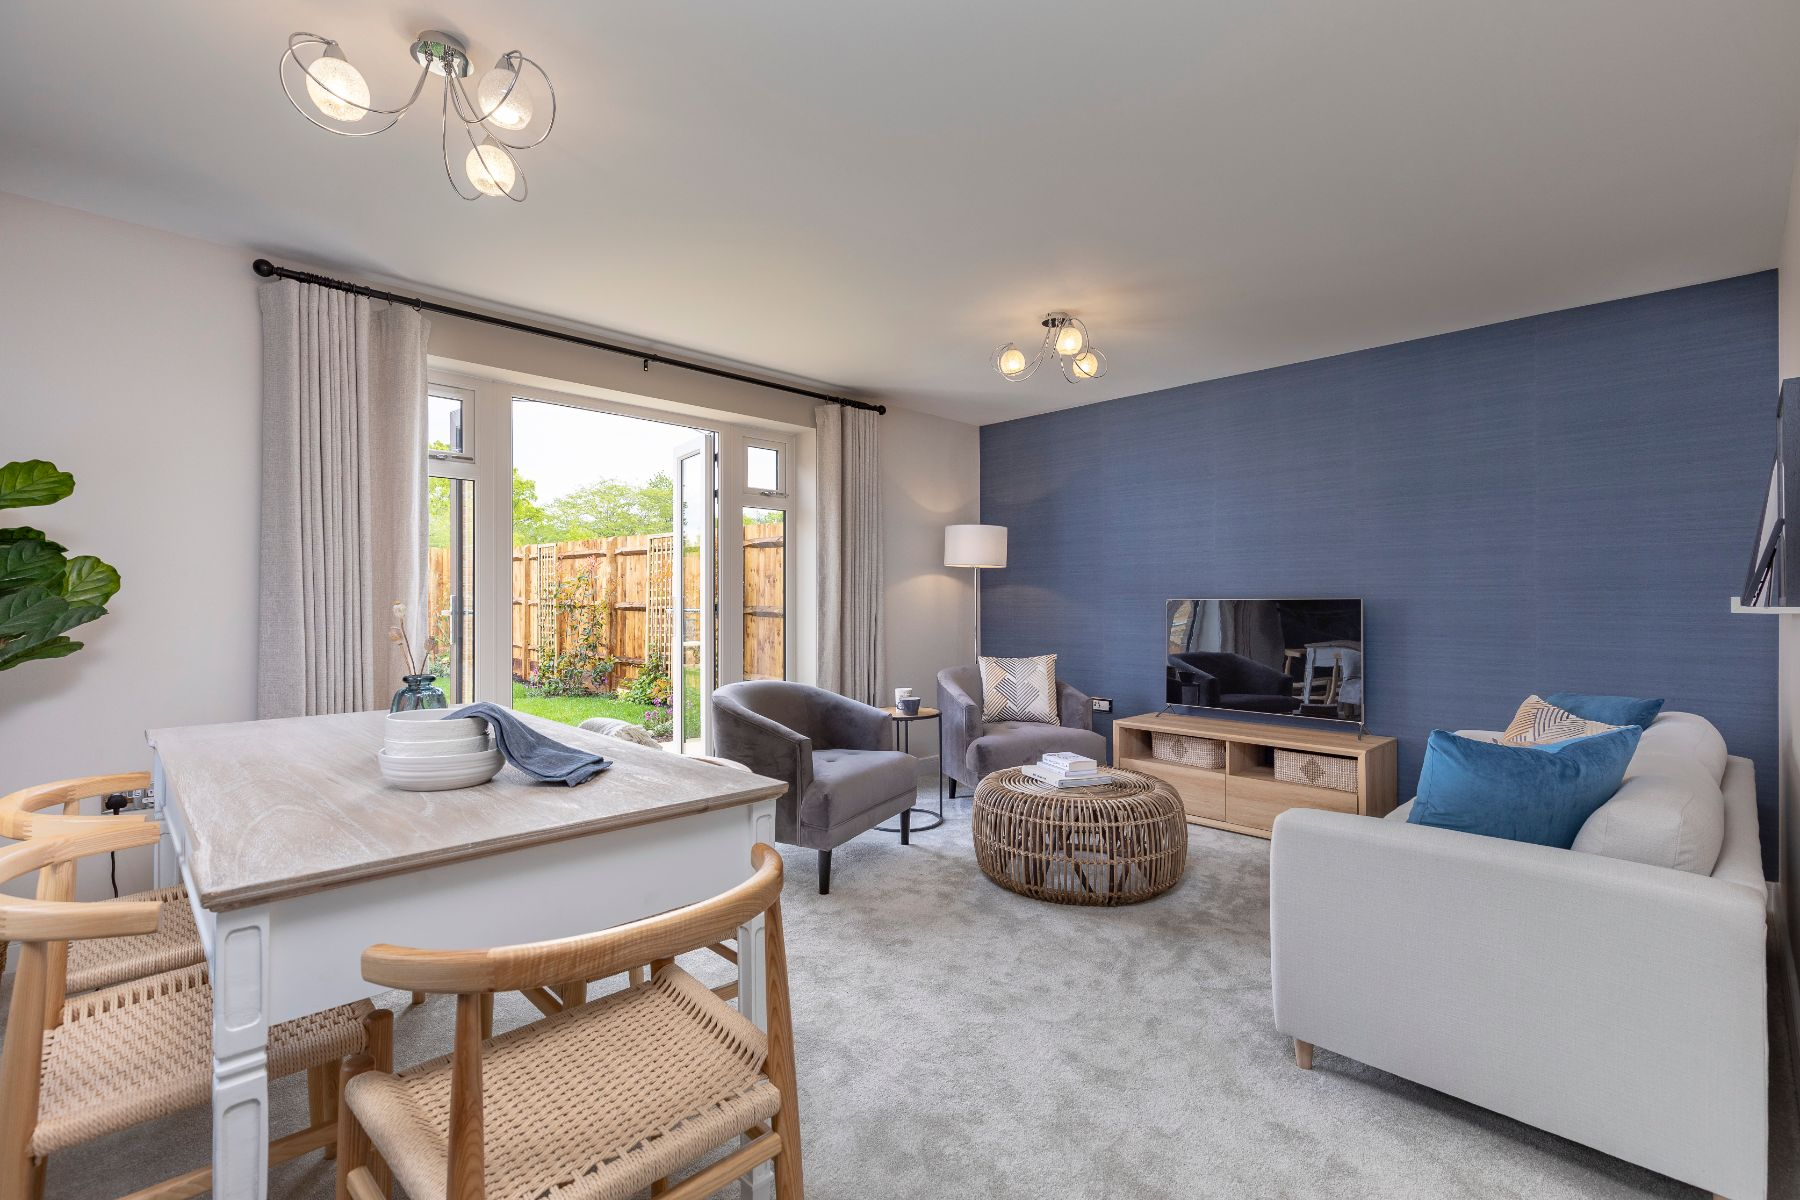 TW Exeter - Mayfield Gardens - Benford example living room